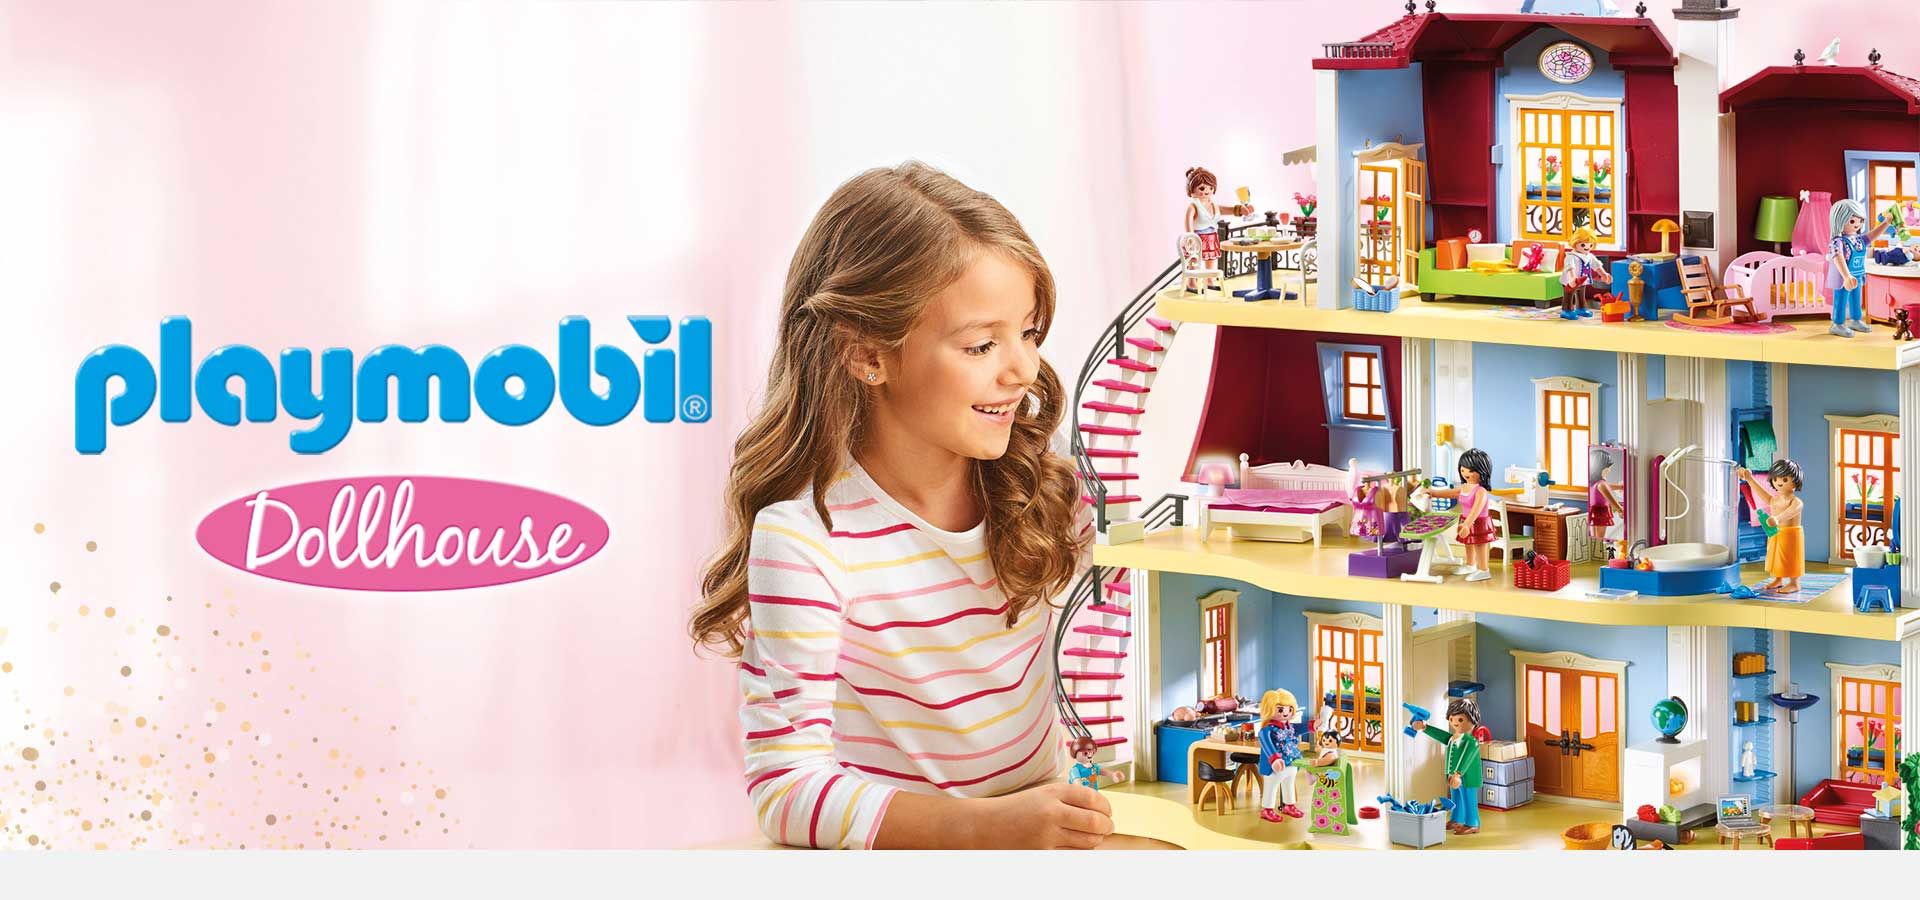 Playmobil Dollhouse Banner.jpg